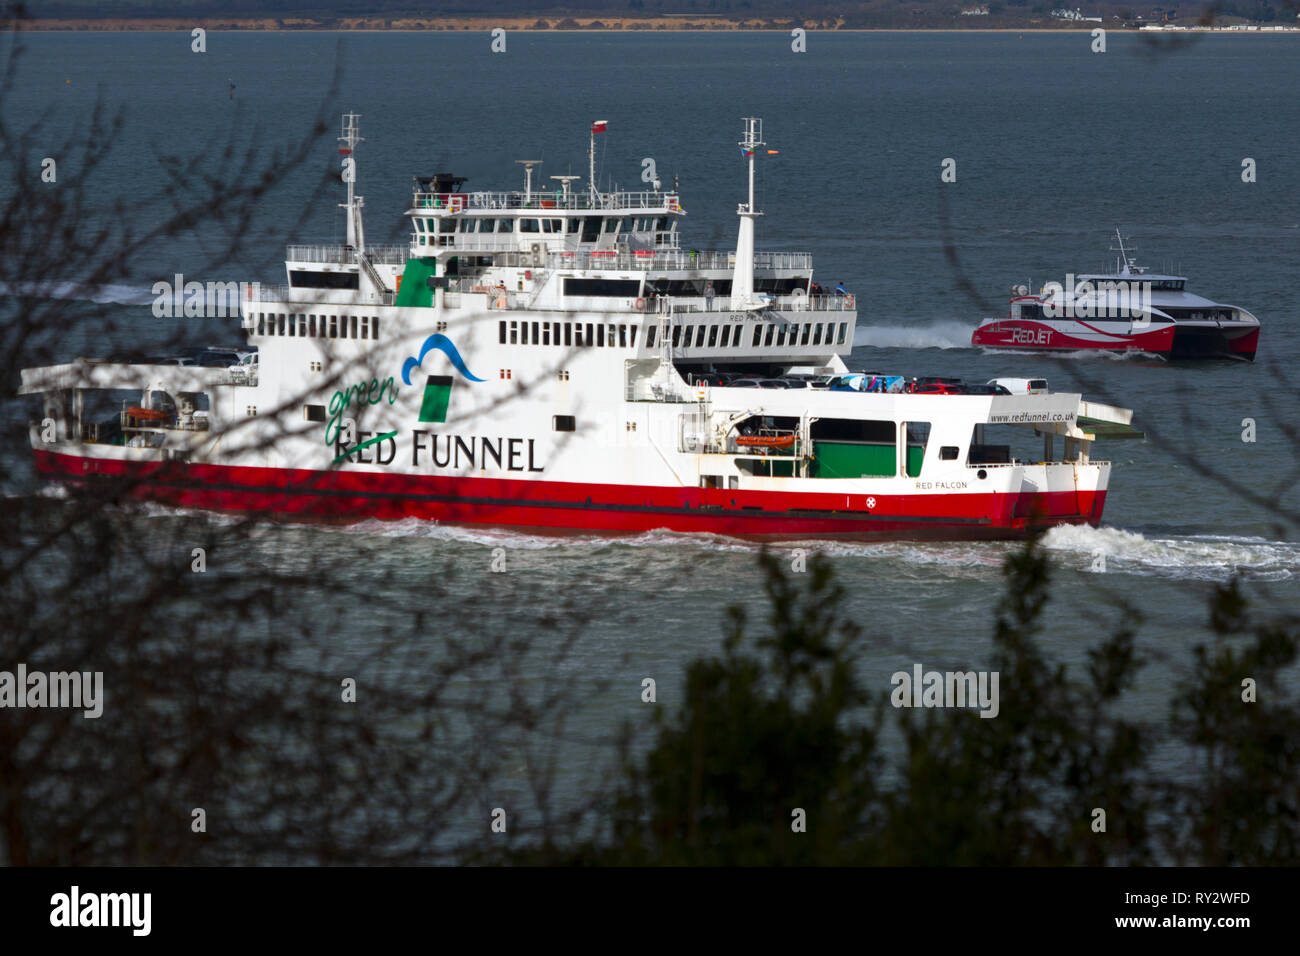 Red,Funnel,fast,passenger,car,ferry,green,deal,campaign,Cowes,Isle of Wight,England,UK, - Stock Image